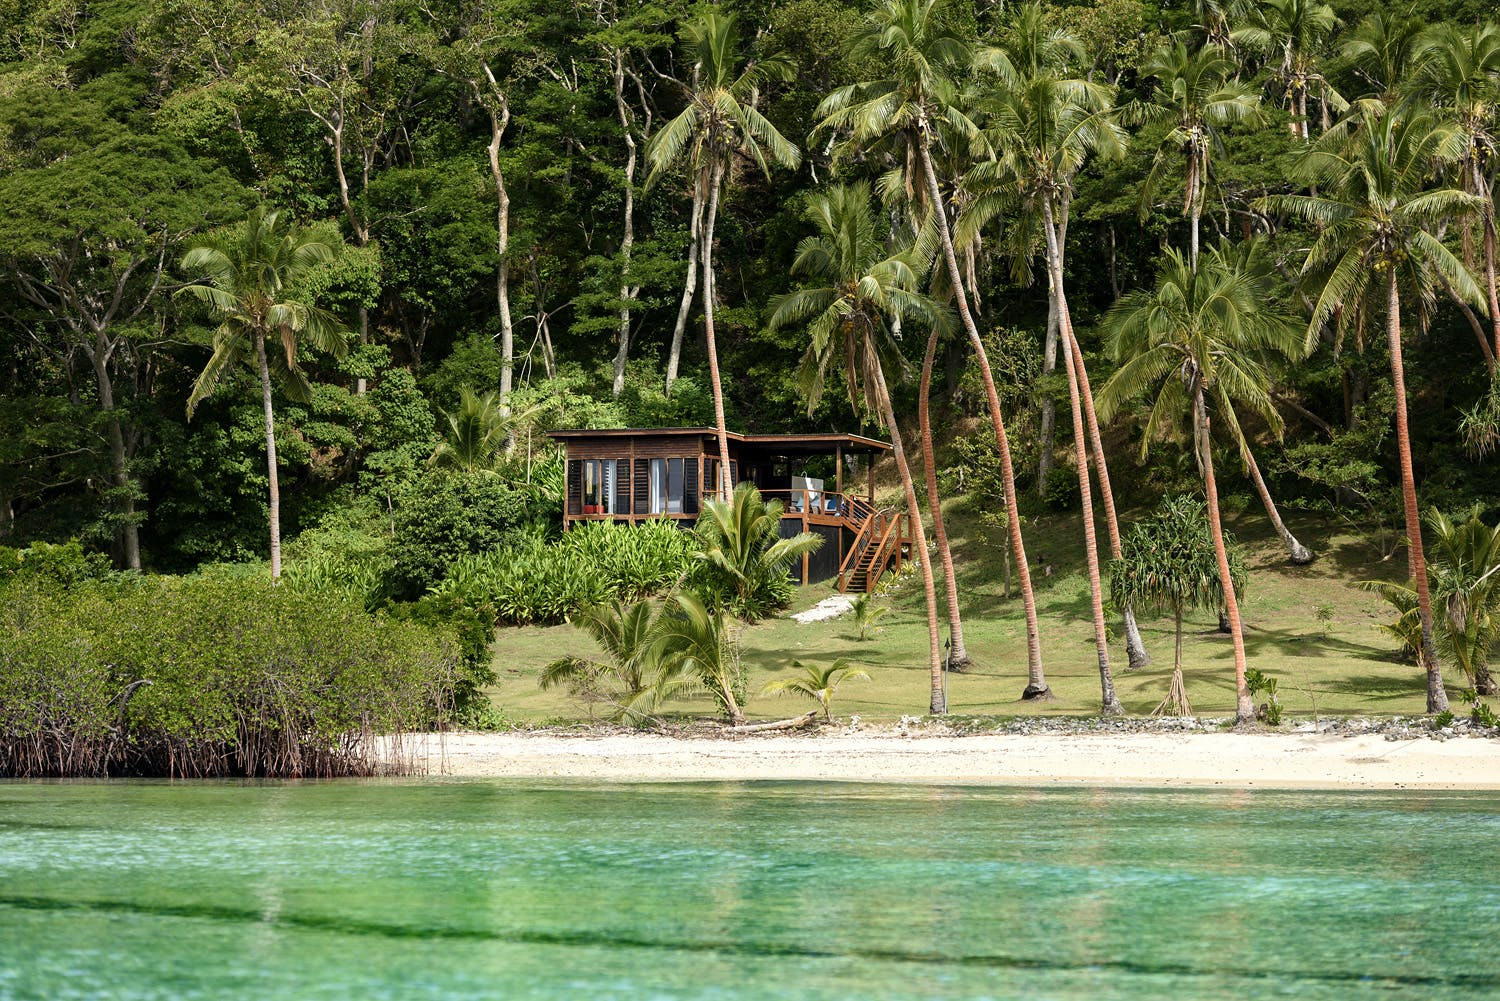 View of Oceanfront Villa from the ocean at Remote Resort Fiji Islands